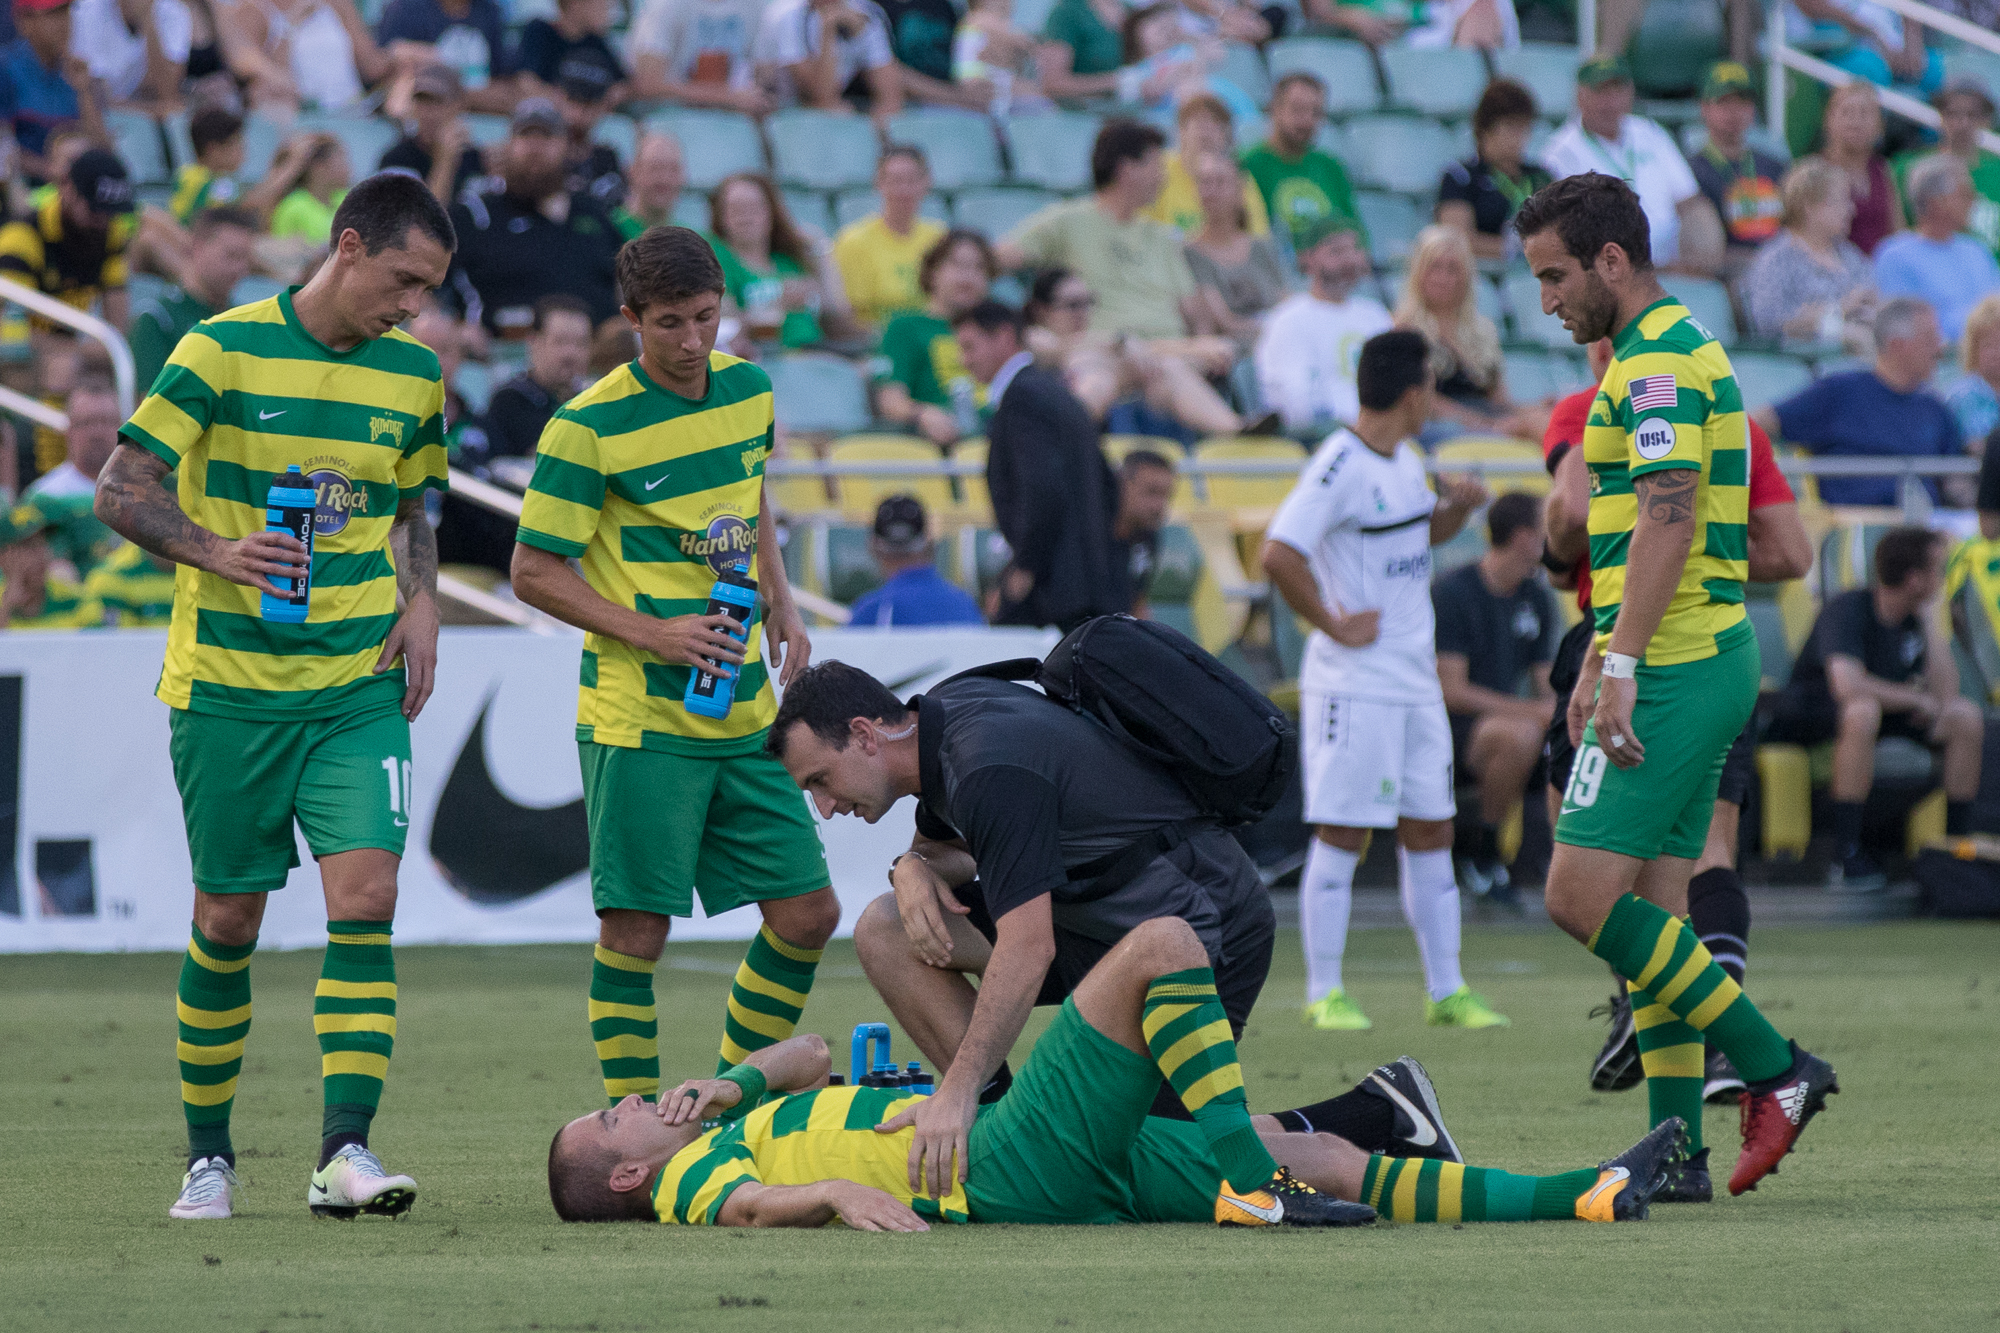 Captain Joe Cole was injured in the 7th minute./STEVEN MUNCIE